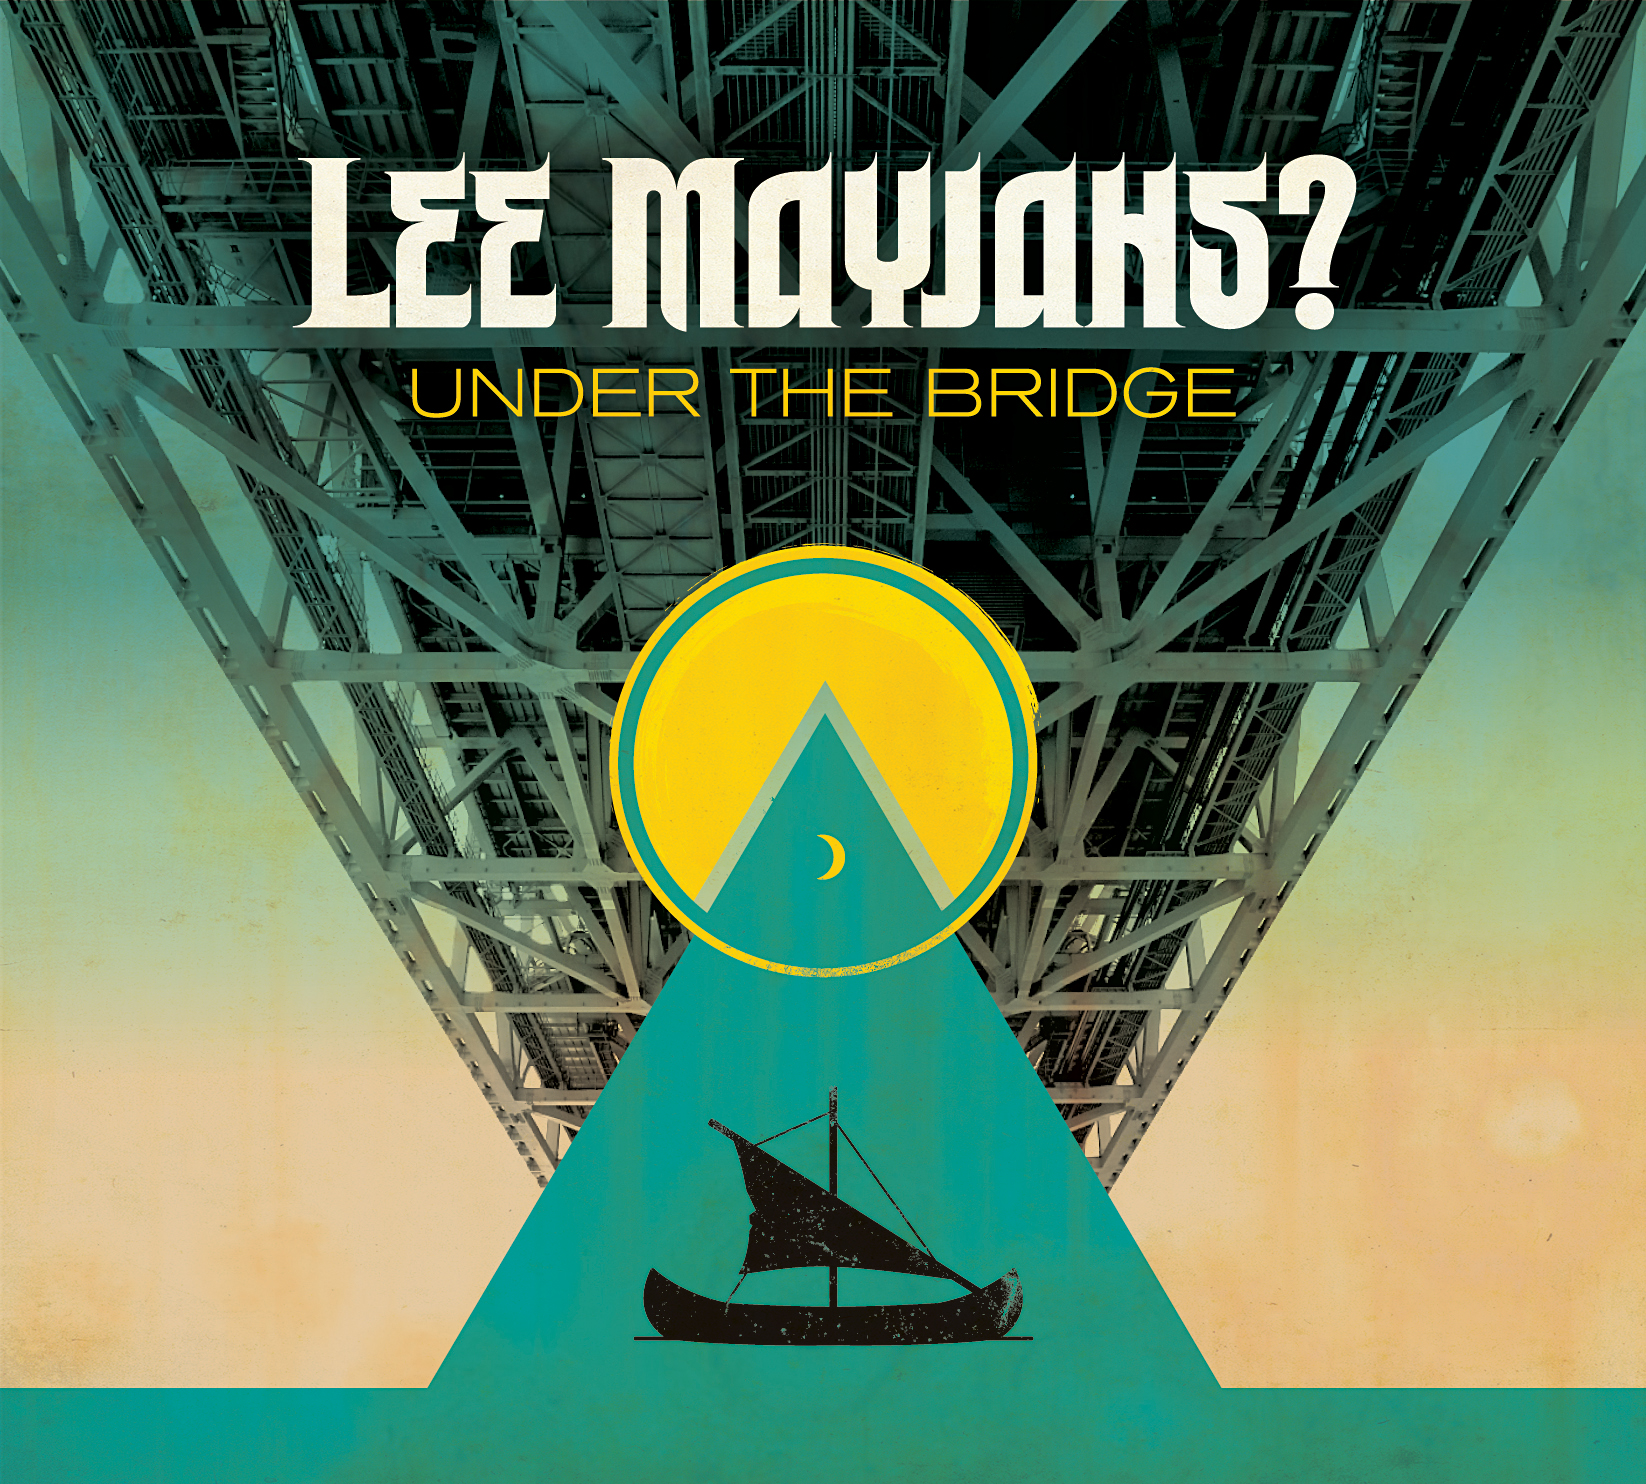 Lee Mayjays? album art